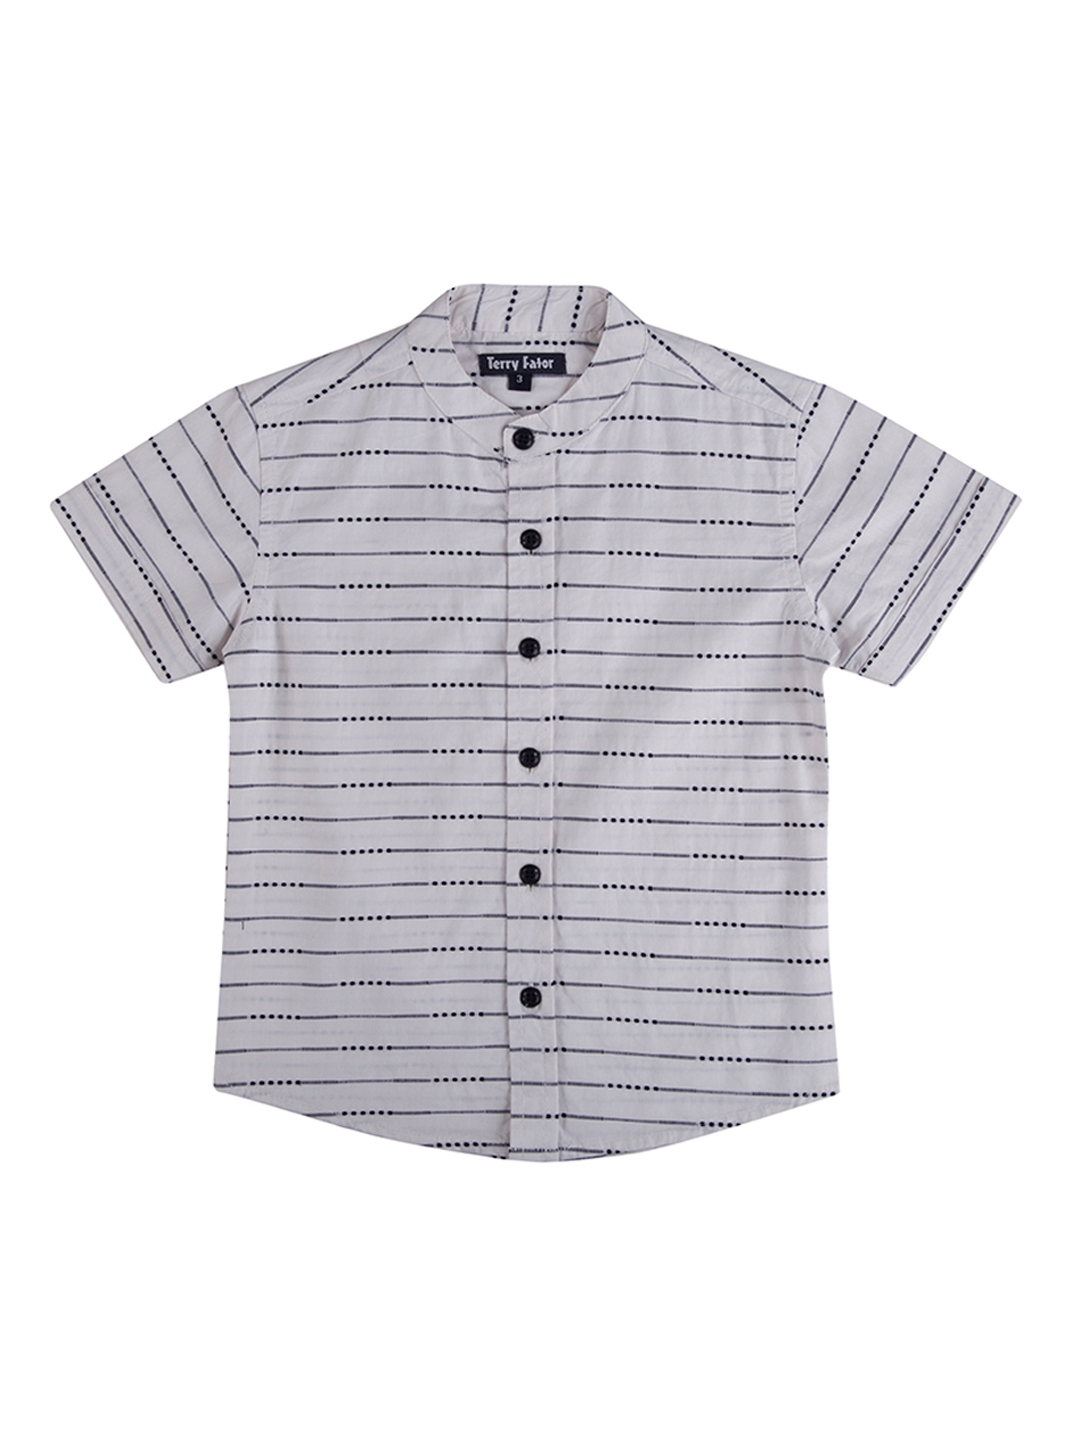 6a3cad85 Buy Terry Fator Boys Grey Comfort Regular Fit Striped Casual Shirt ...